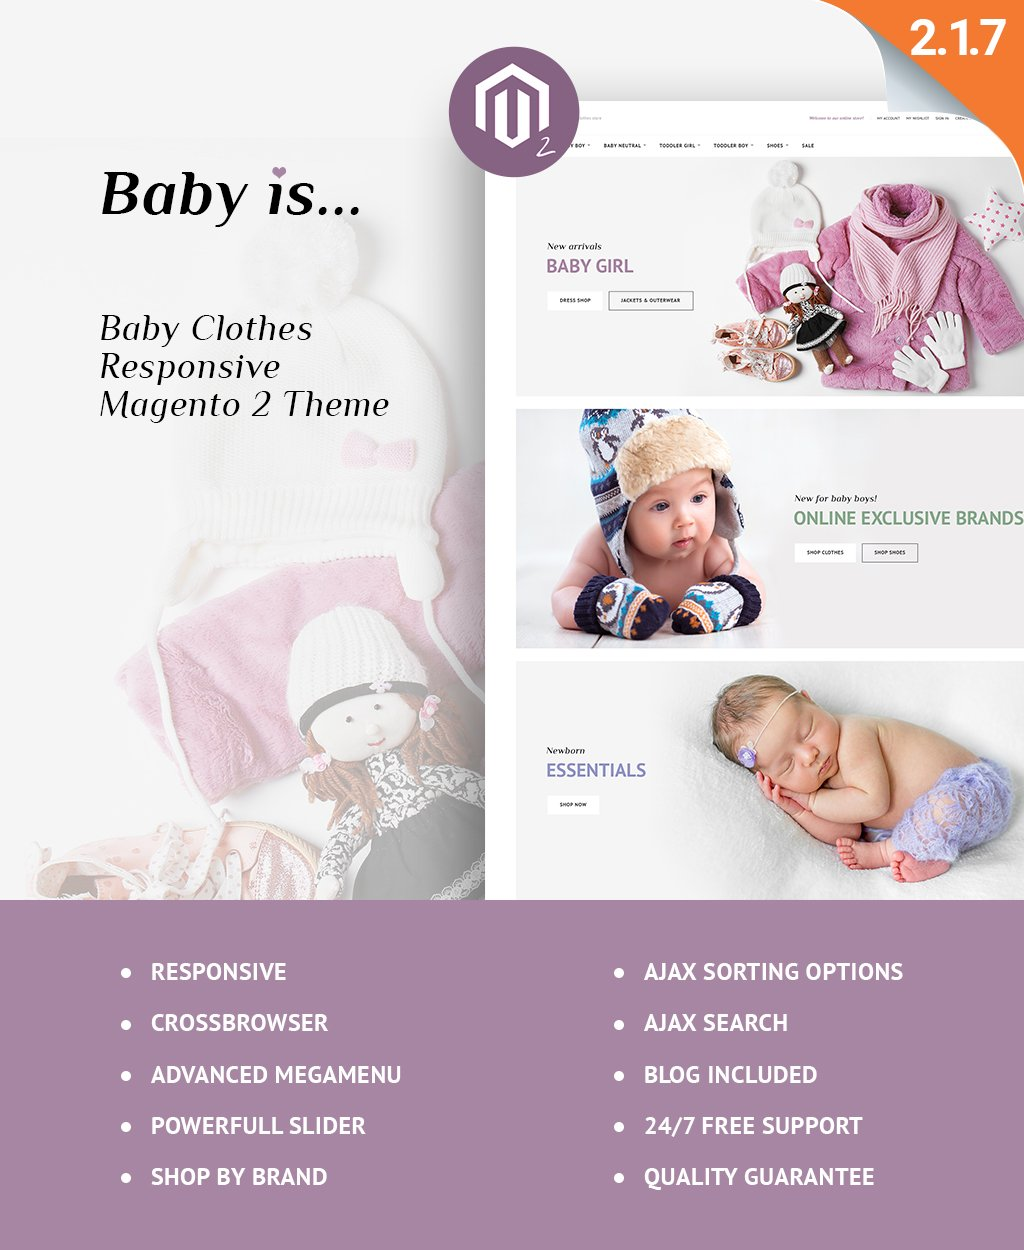 Babyis - Baby Clothes Store Responsive Magento Theme - screenshot